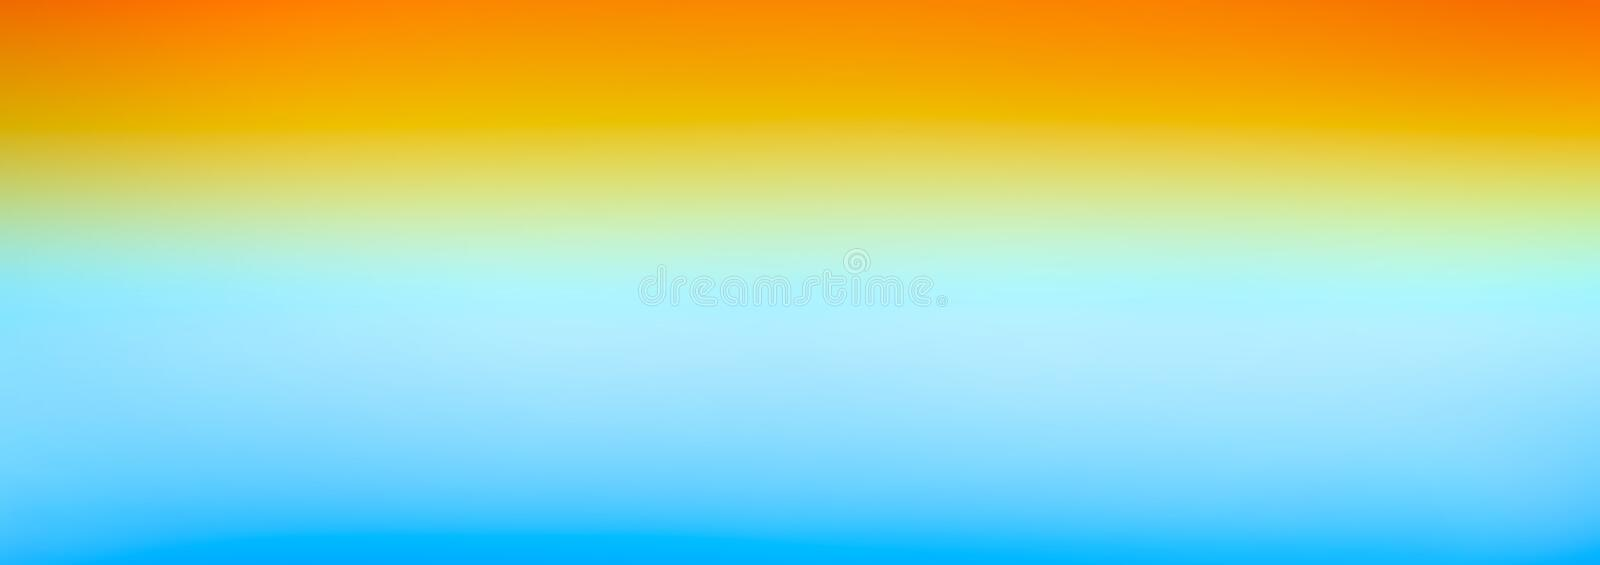 Web banner orange yellow blue bright gradient colorful horizontal watercolor texture background. Sunrise or sea sunset blurred b royalty free illustration